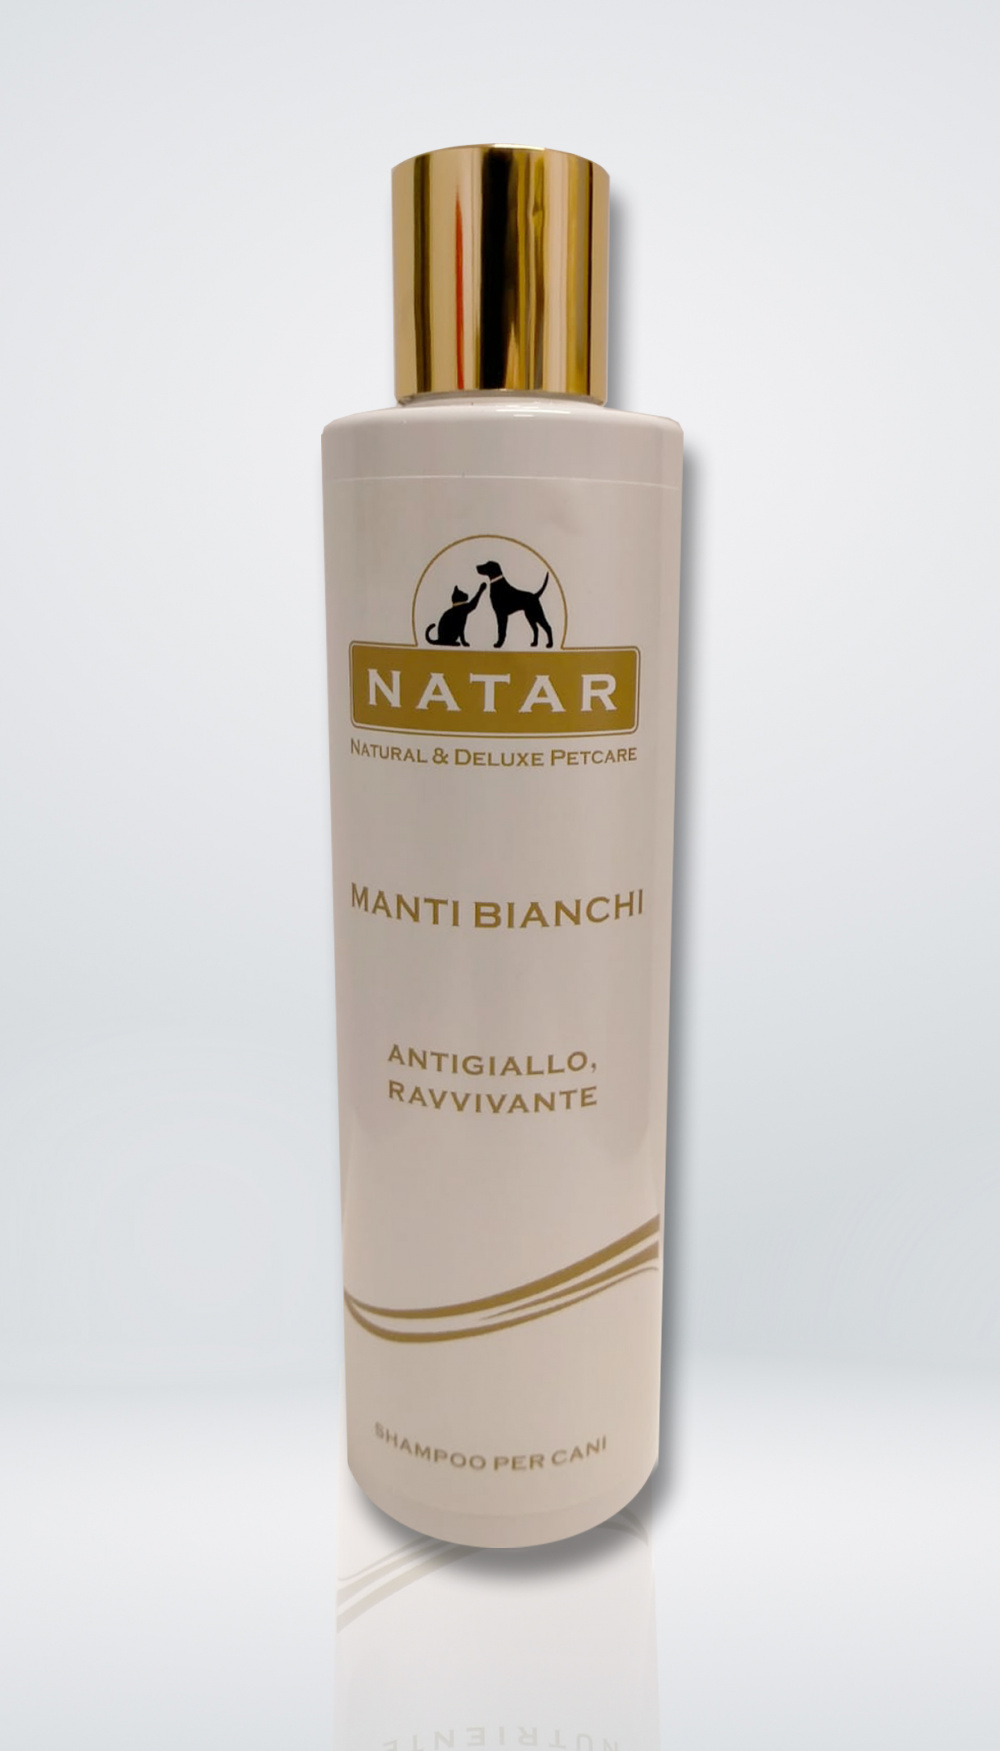 Natar Shampoo for dogs with white fur